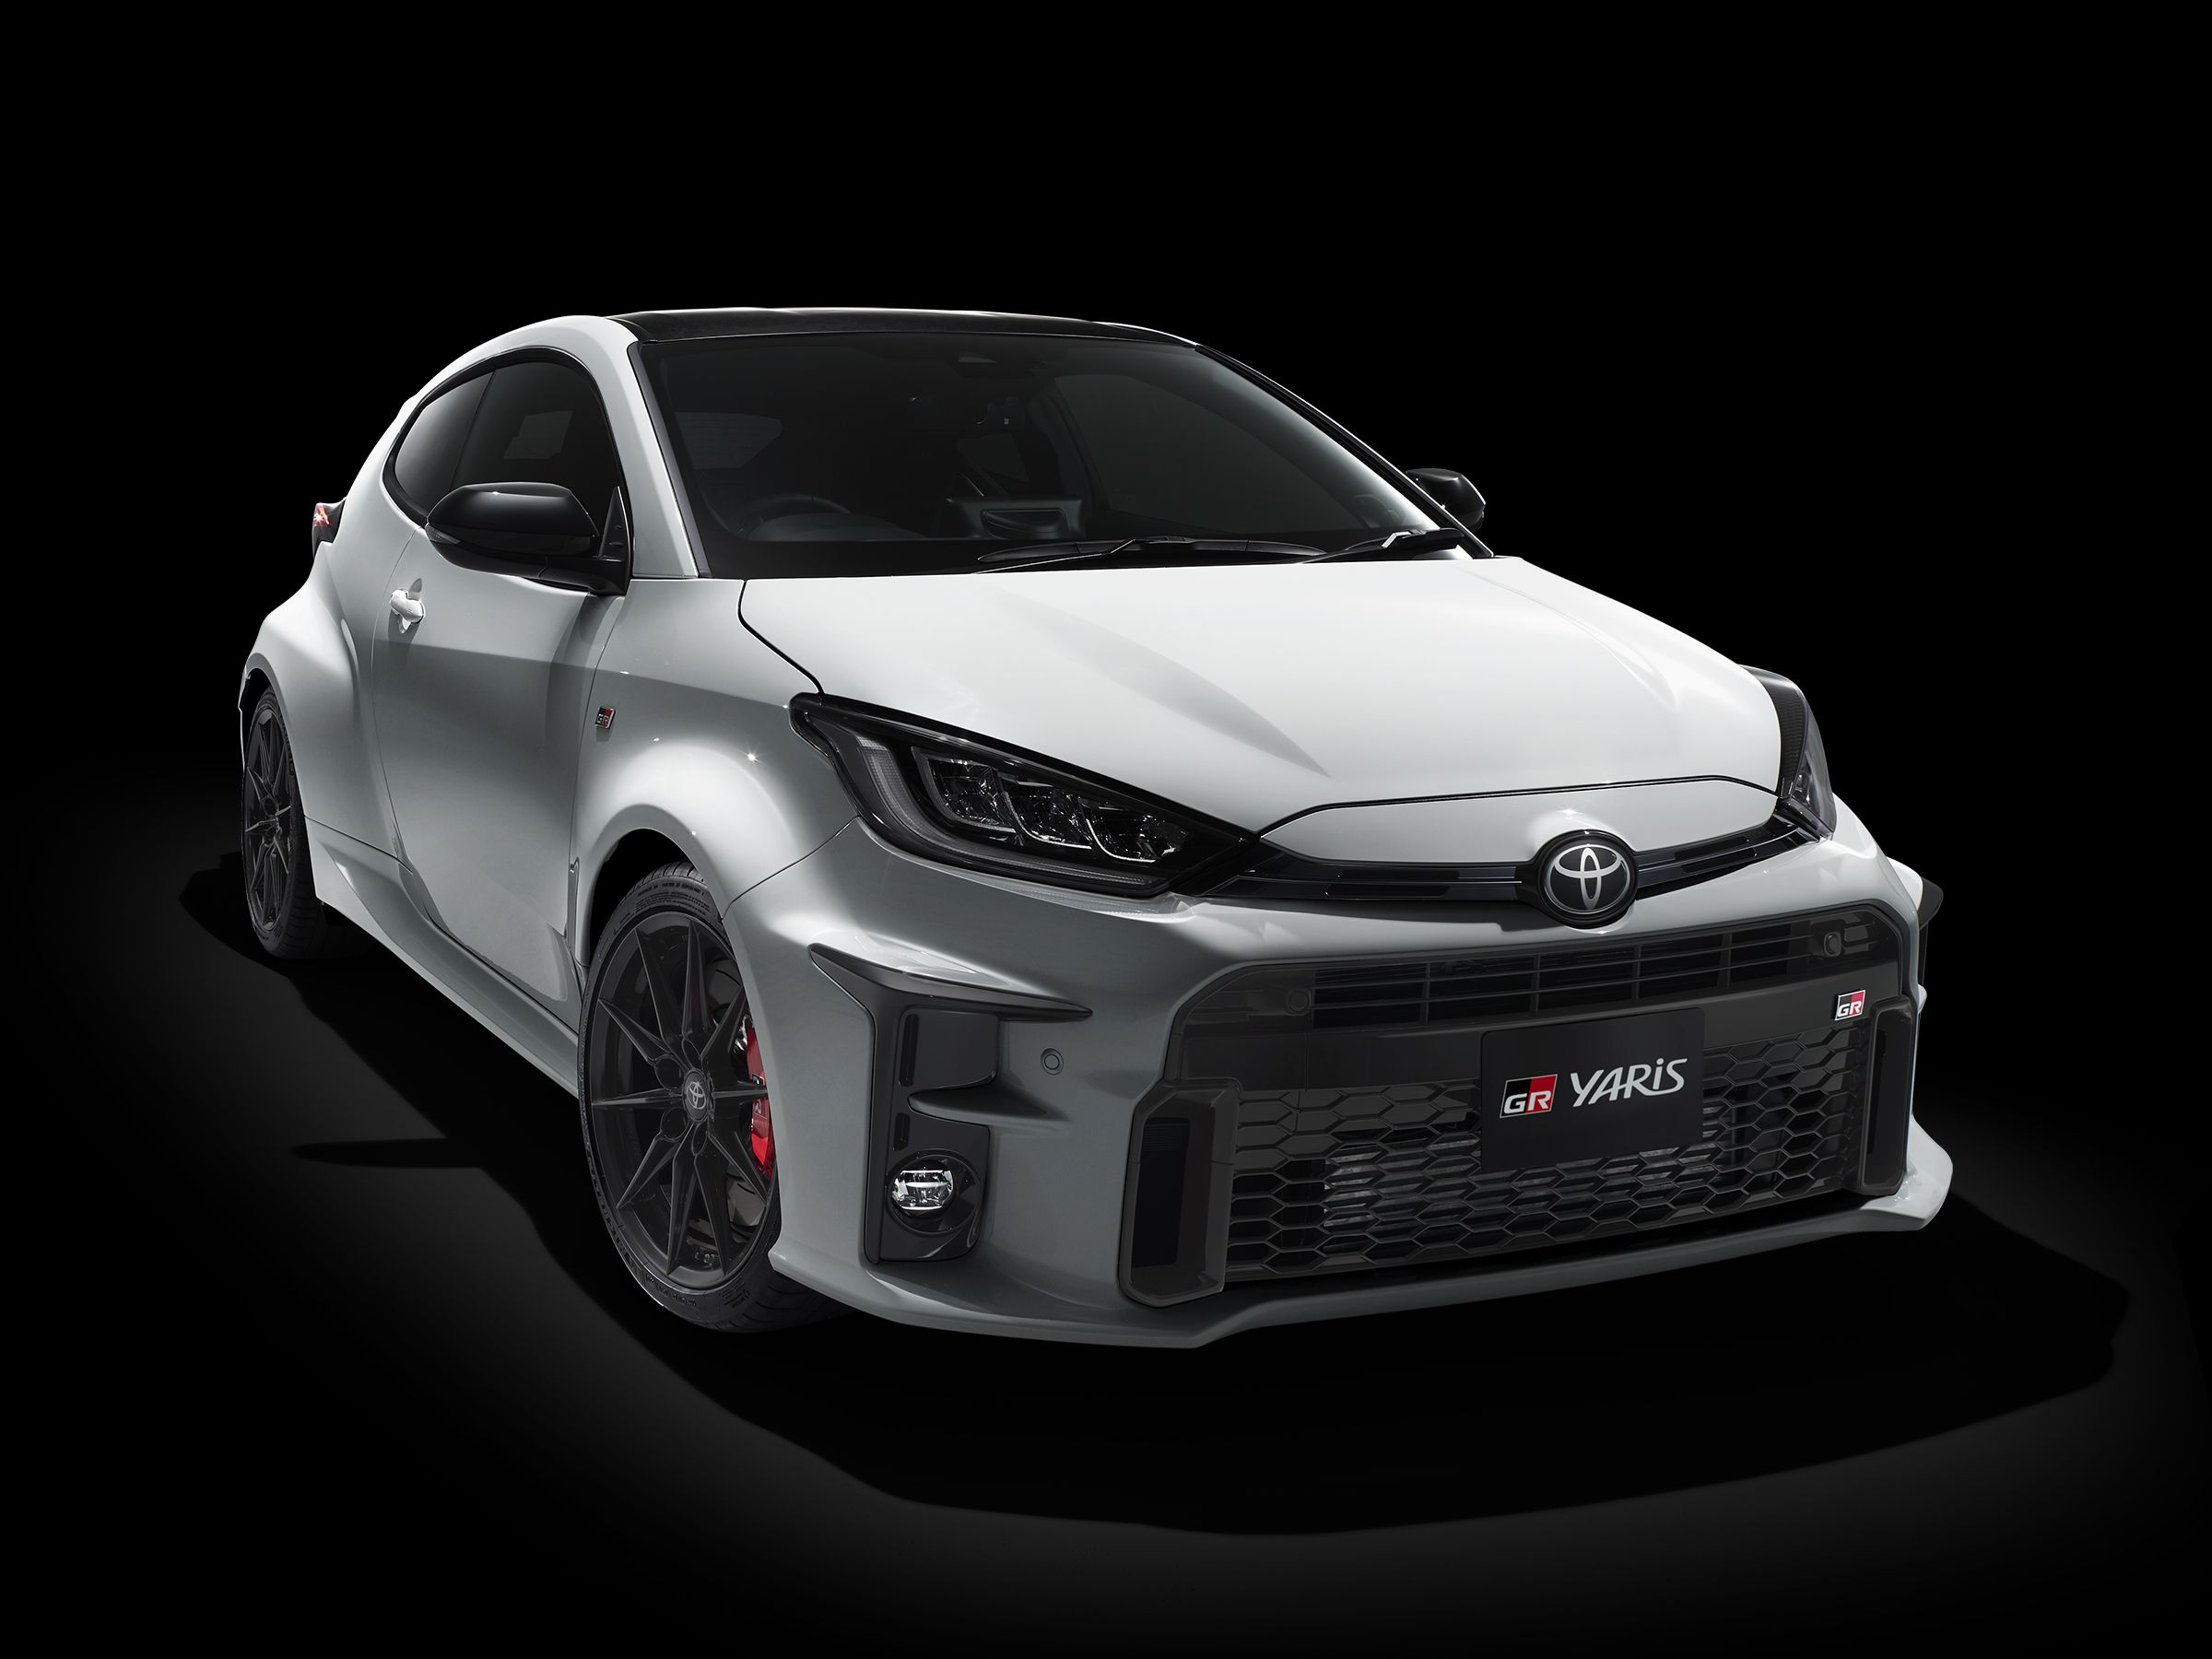 The 2021 Toyota GR Yaris Is the 268-HP AWD Rally Homologation Special of Your Dreams